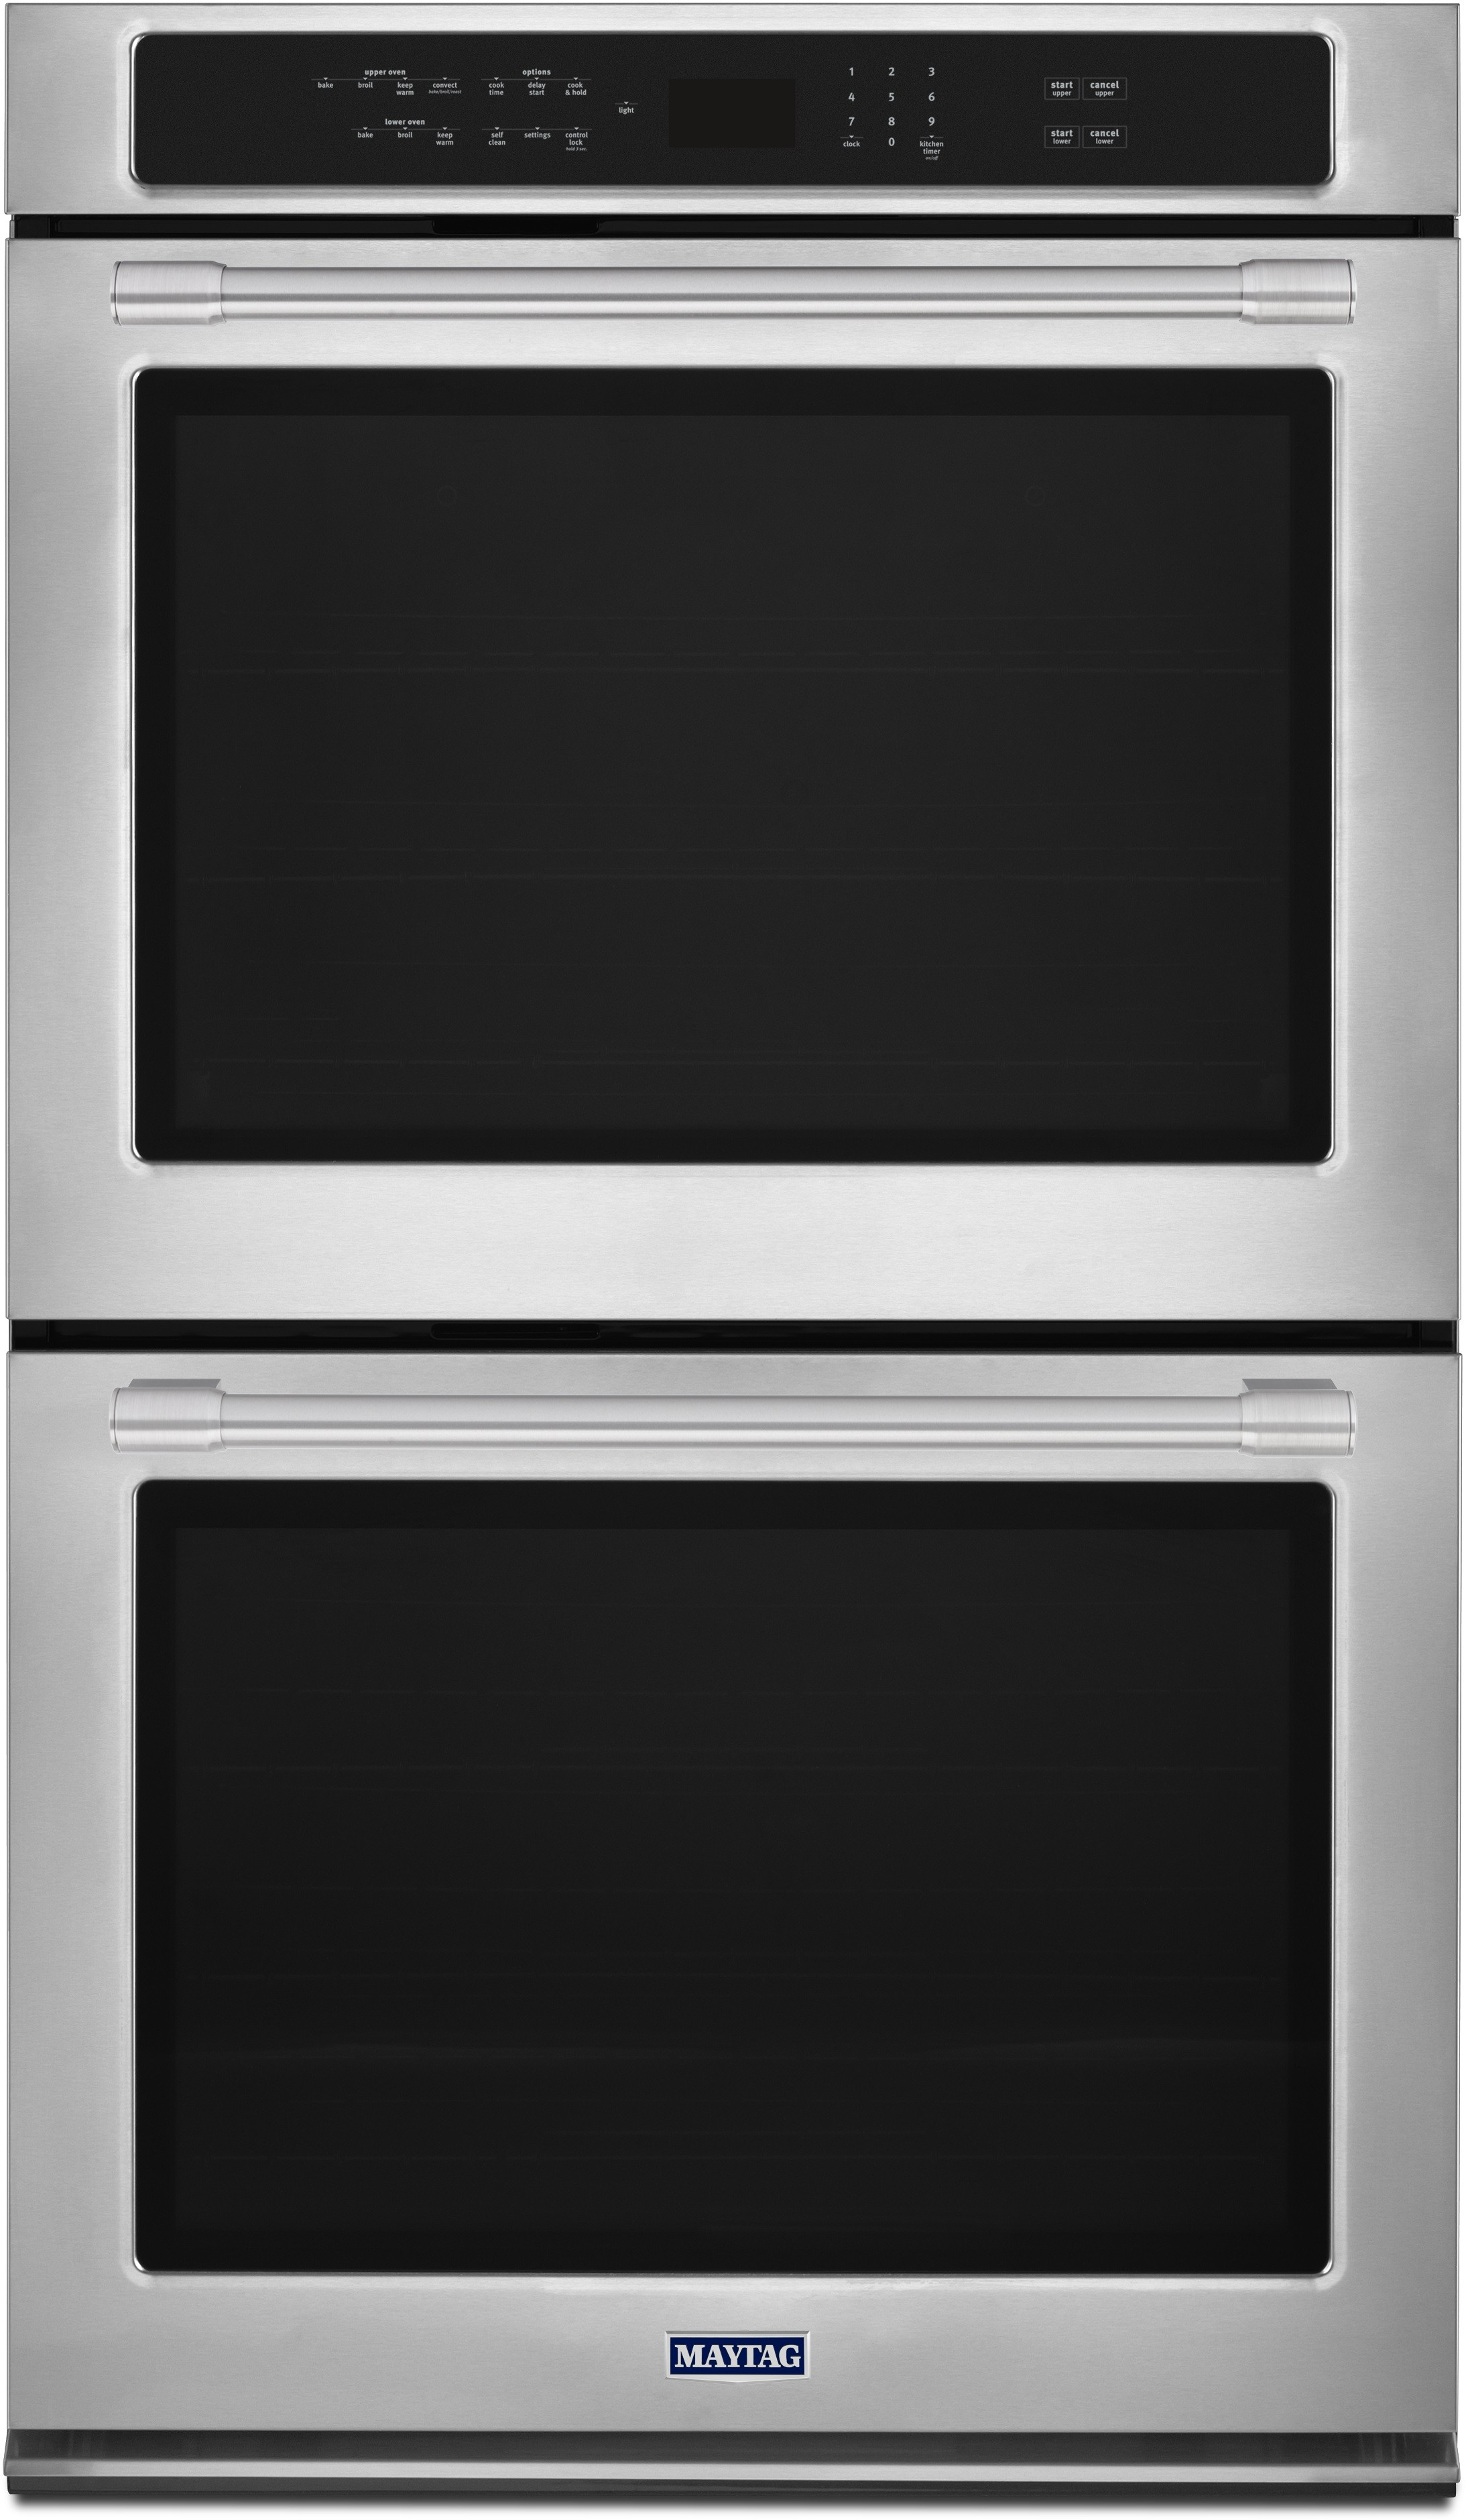 Jenn Air Maytag Double Wall Ovens